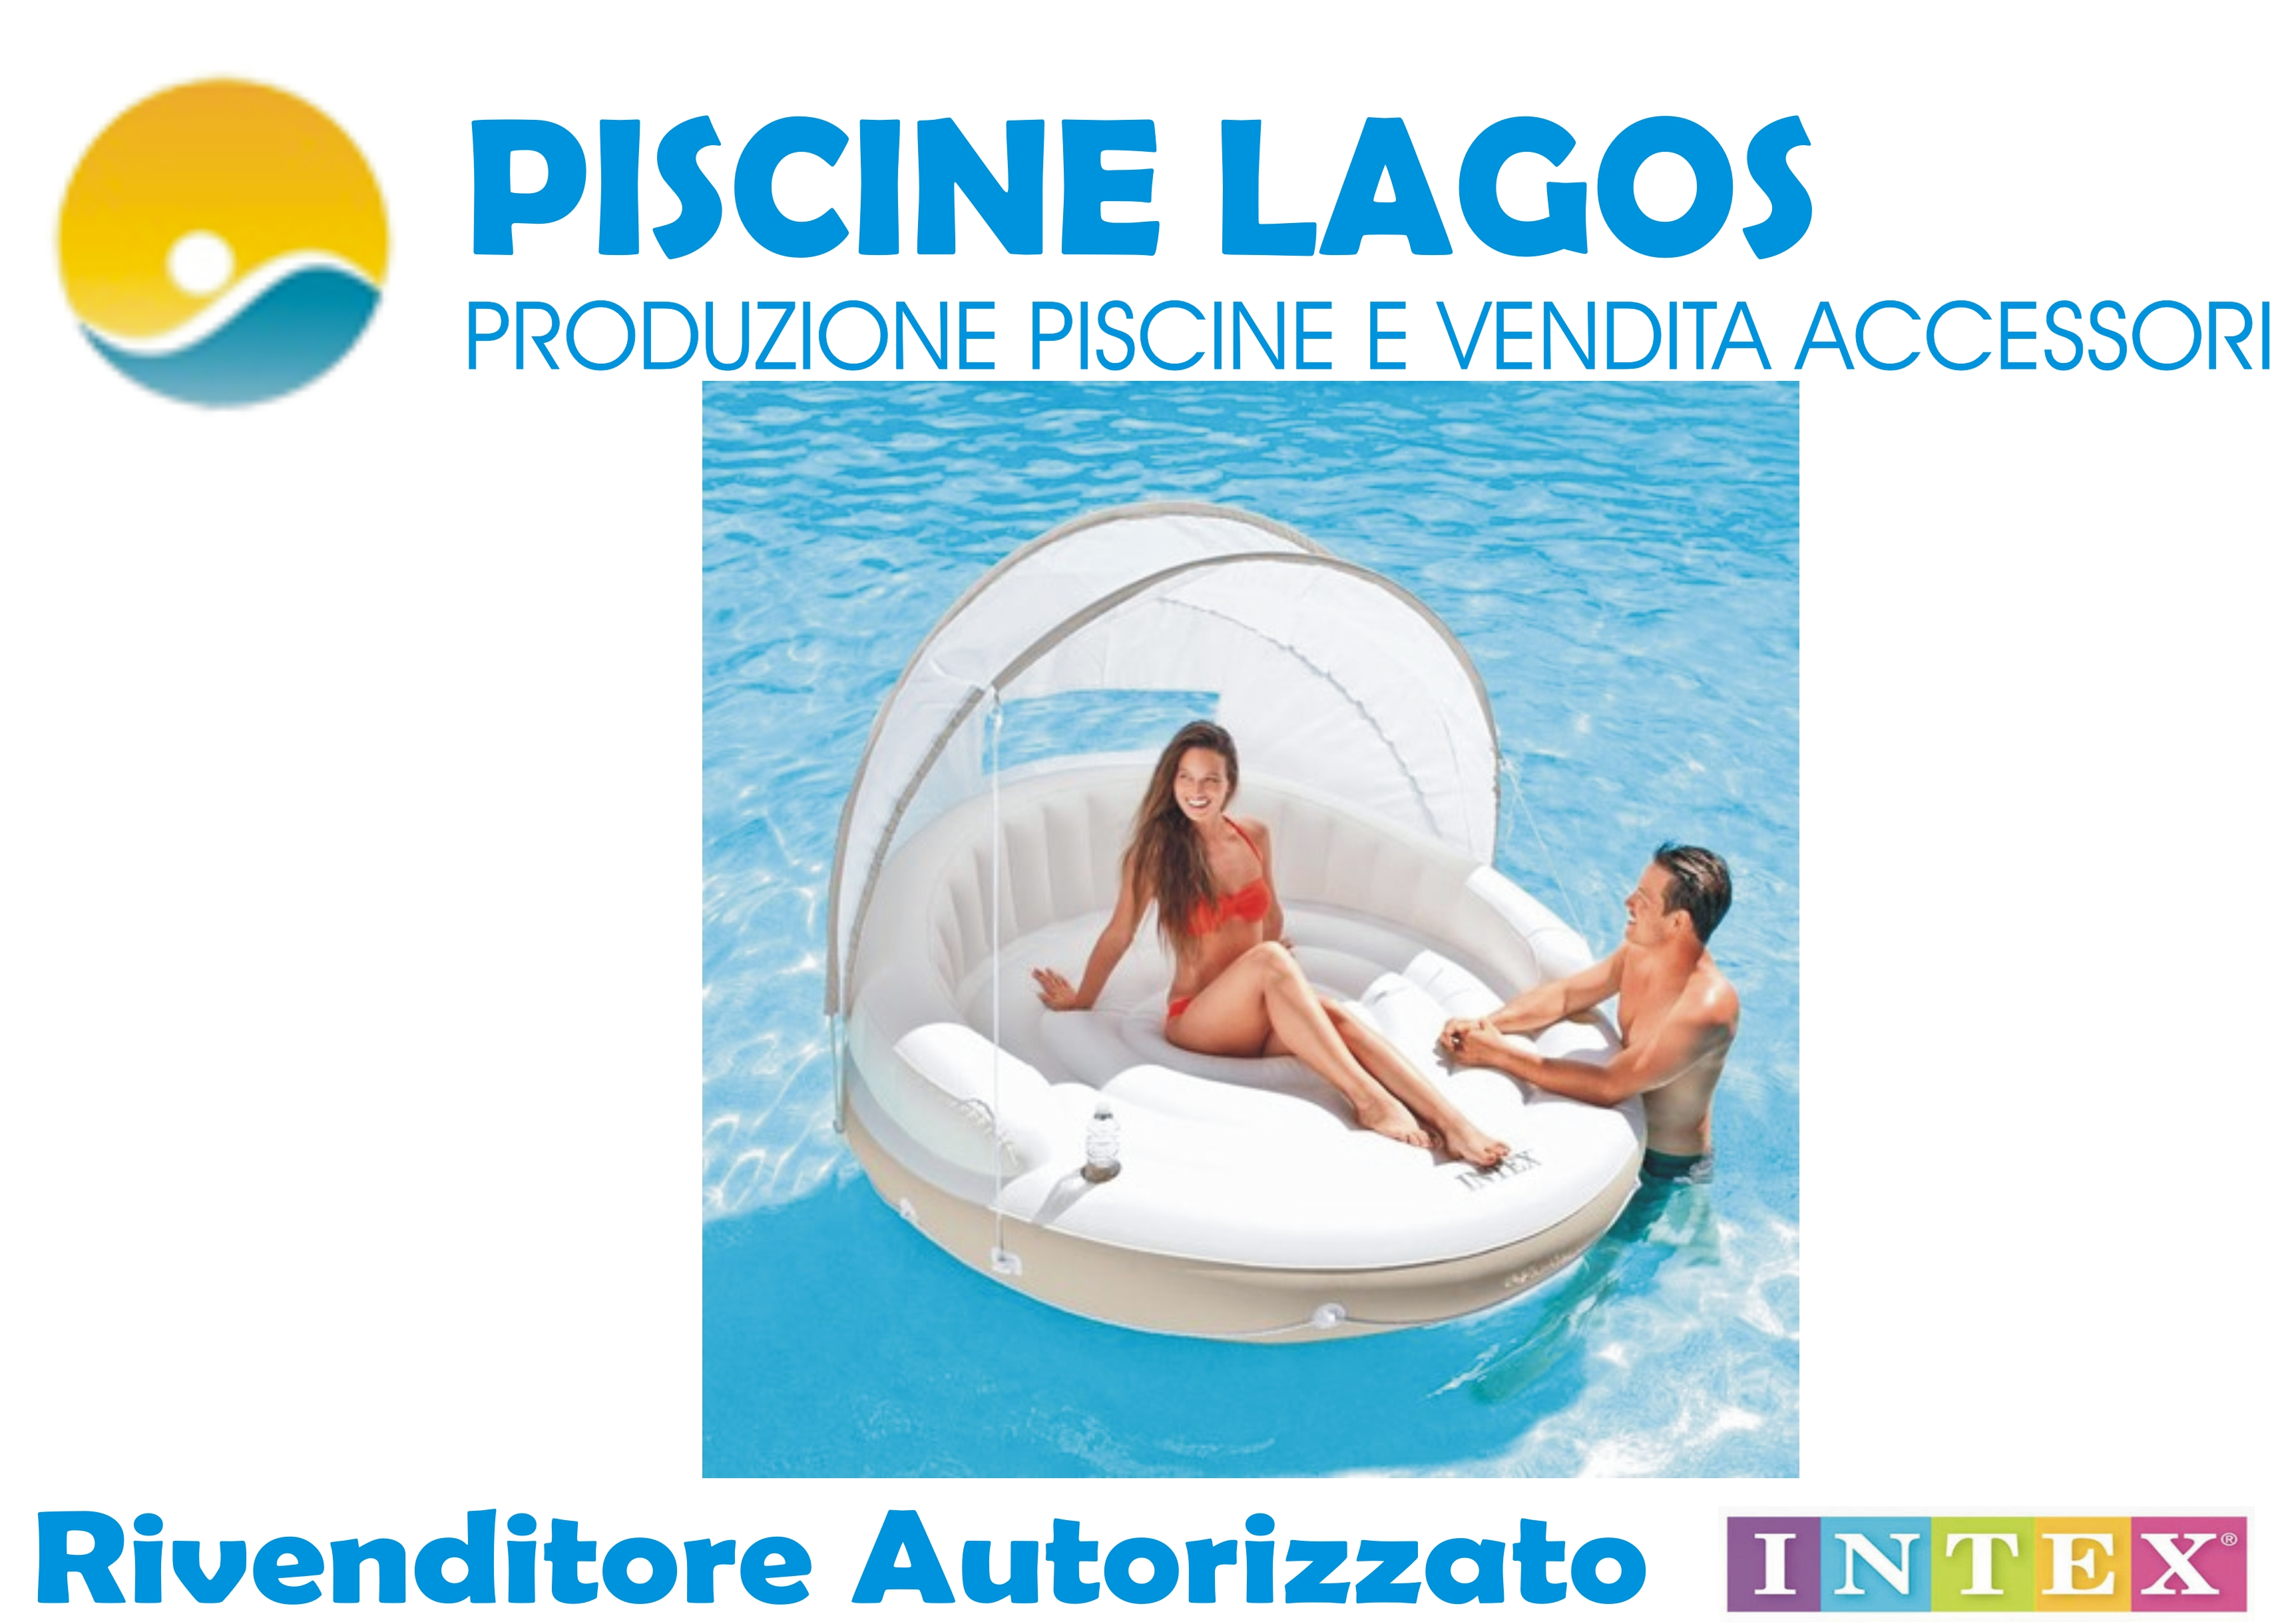 Isola galleggiante intexcod 58292 ciambellone con - Accessori piscine intex ...